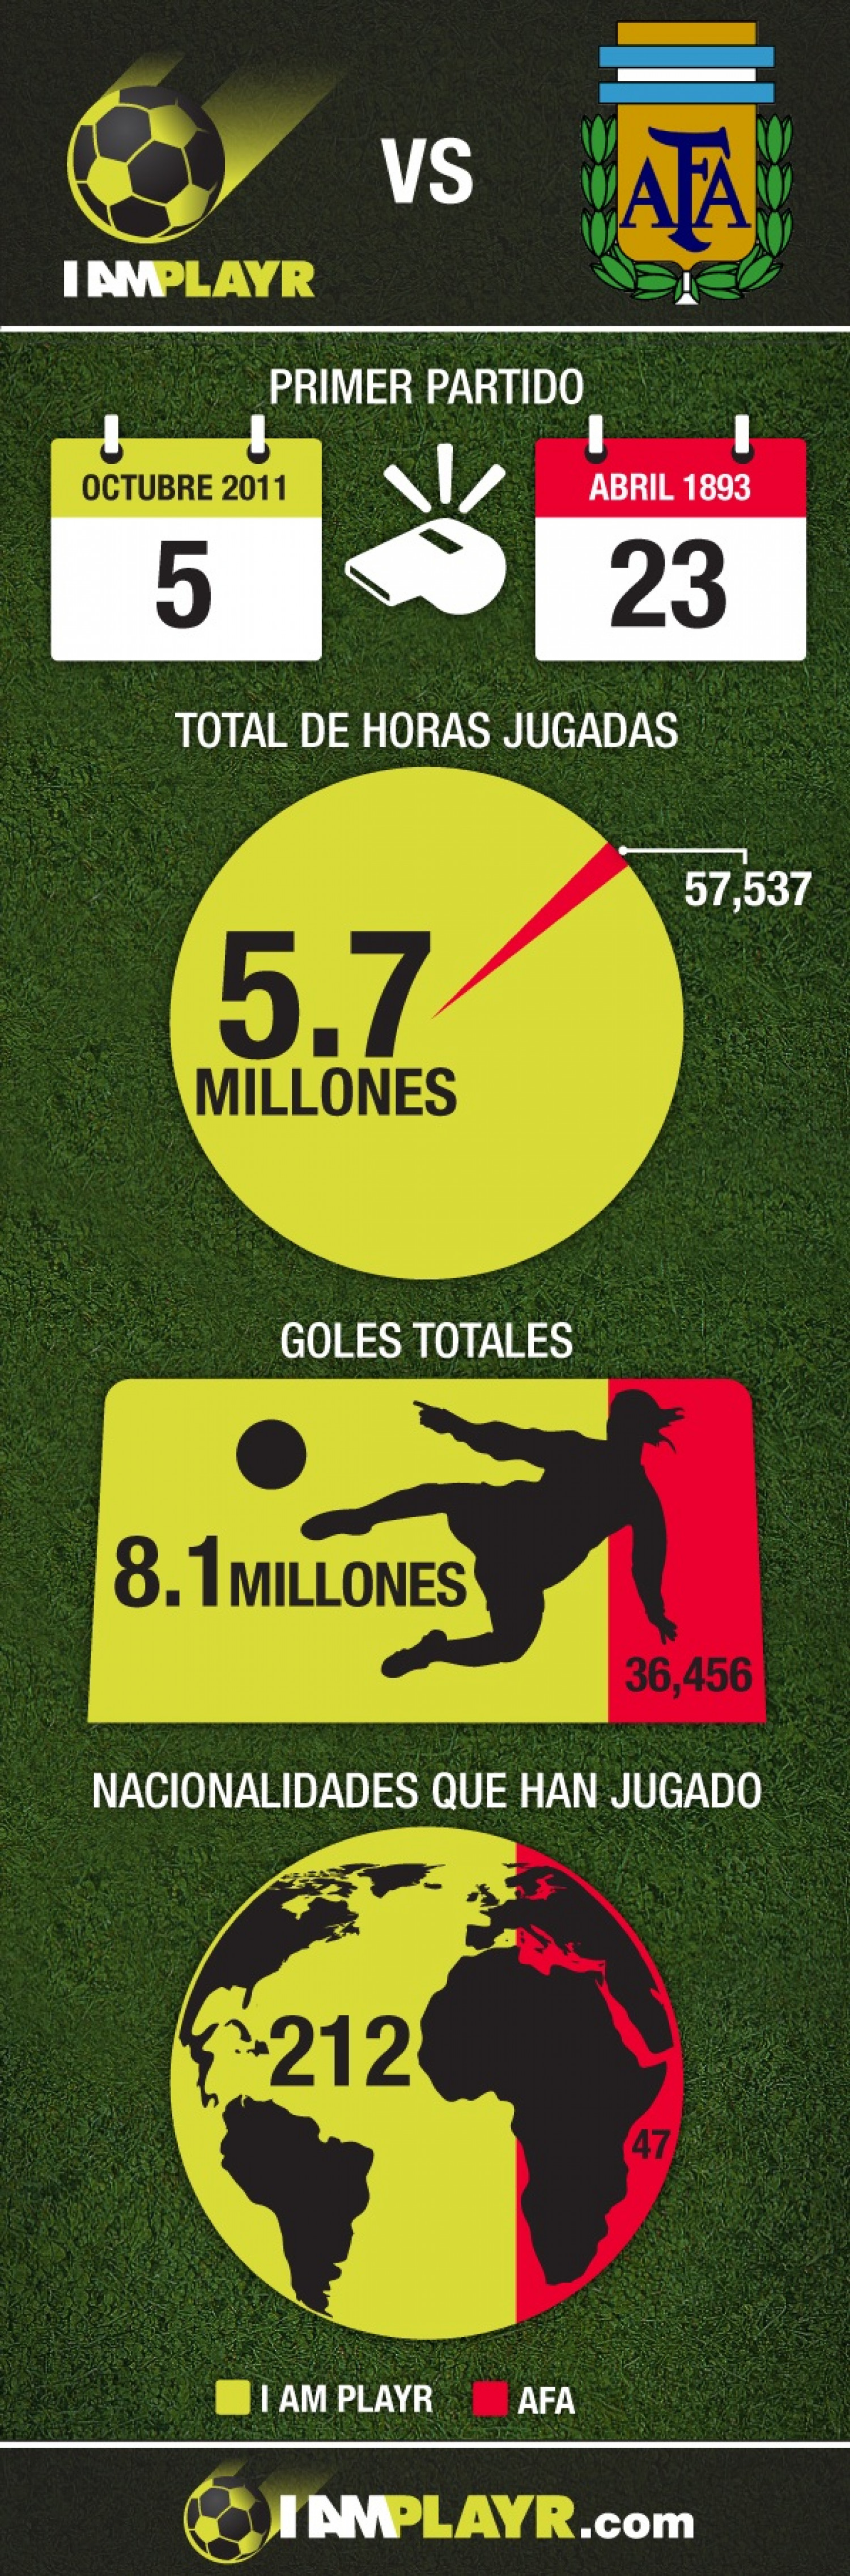 I AM PLAYR vs LIGA ARGENTINA Infographic